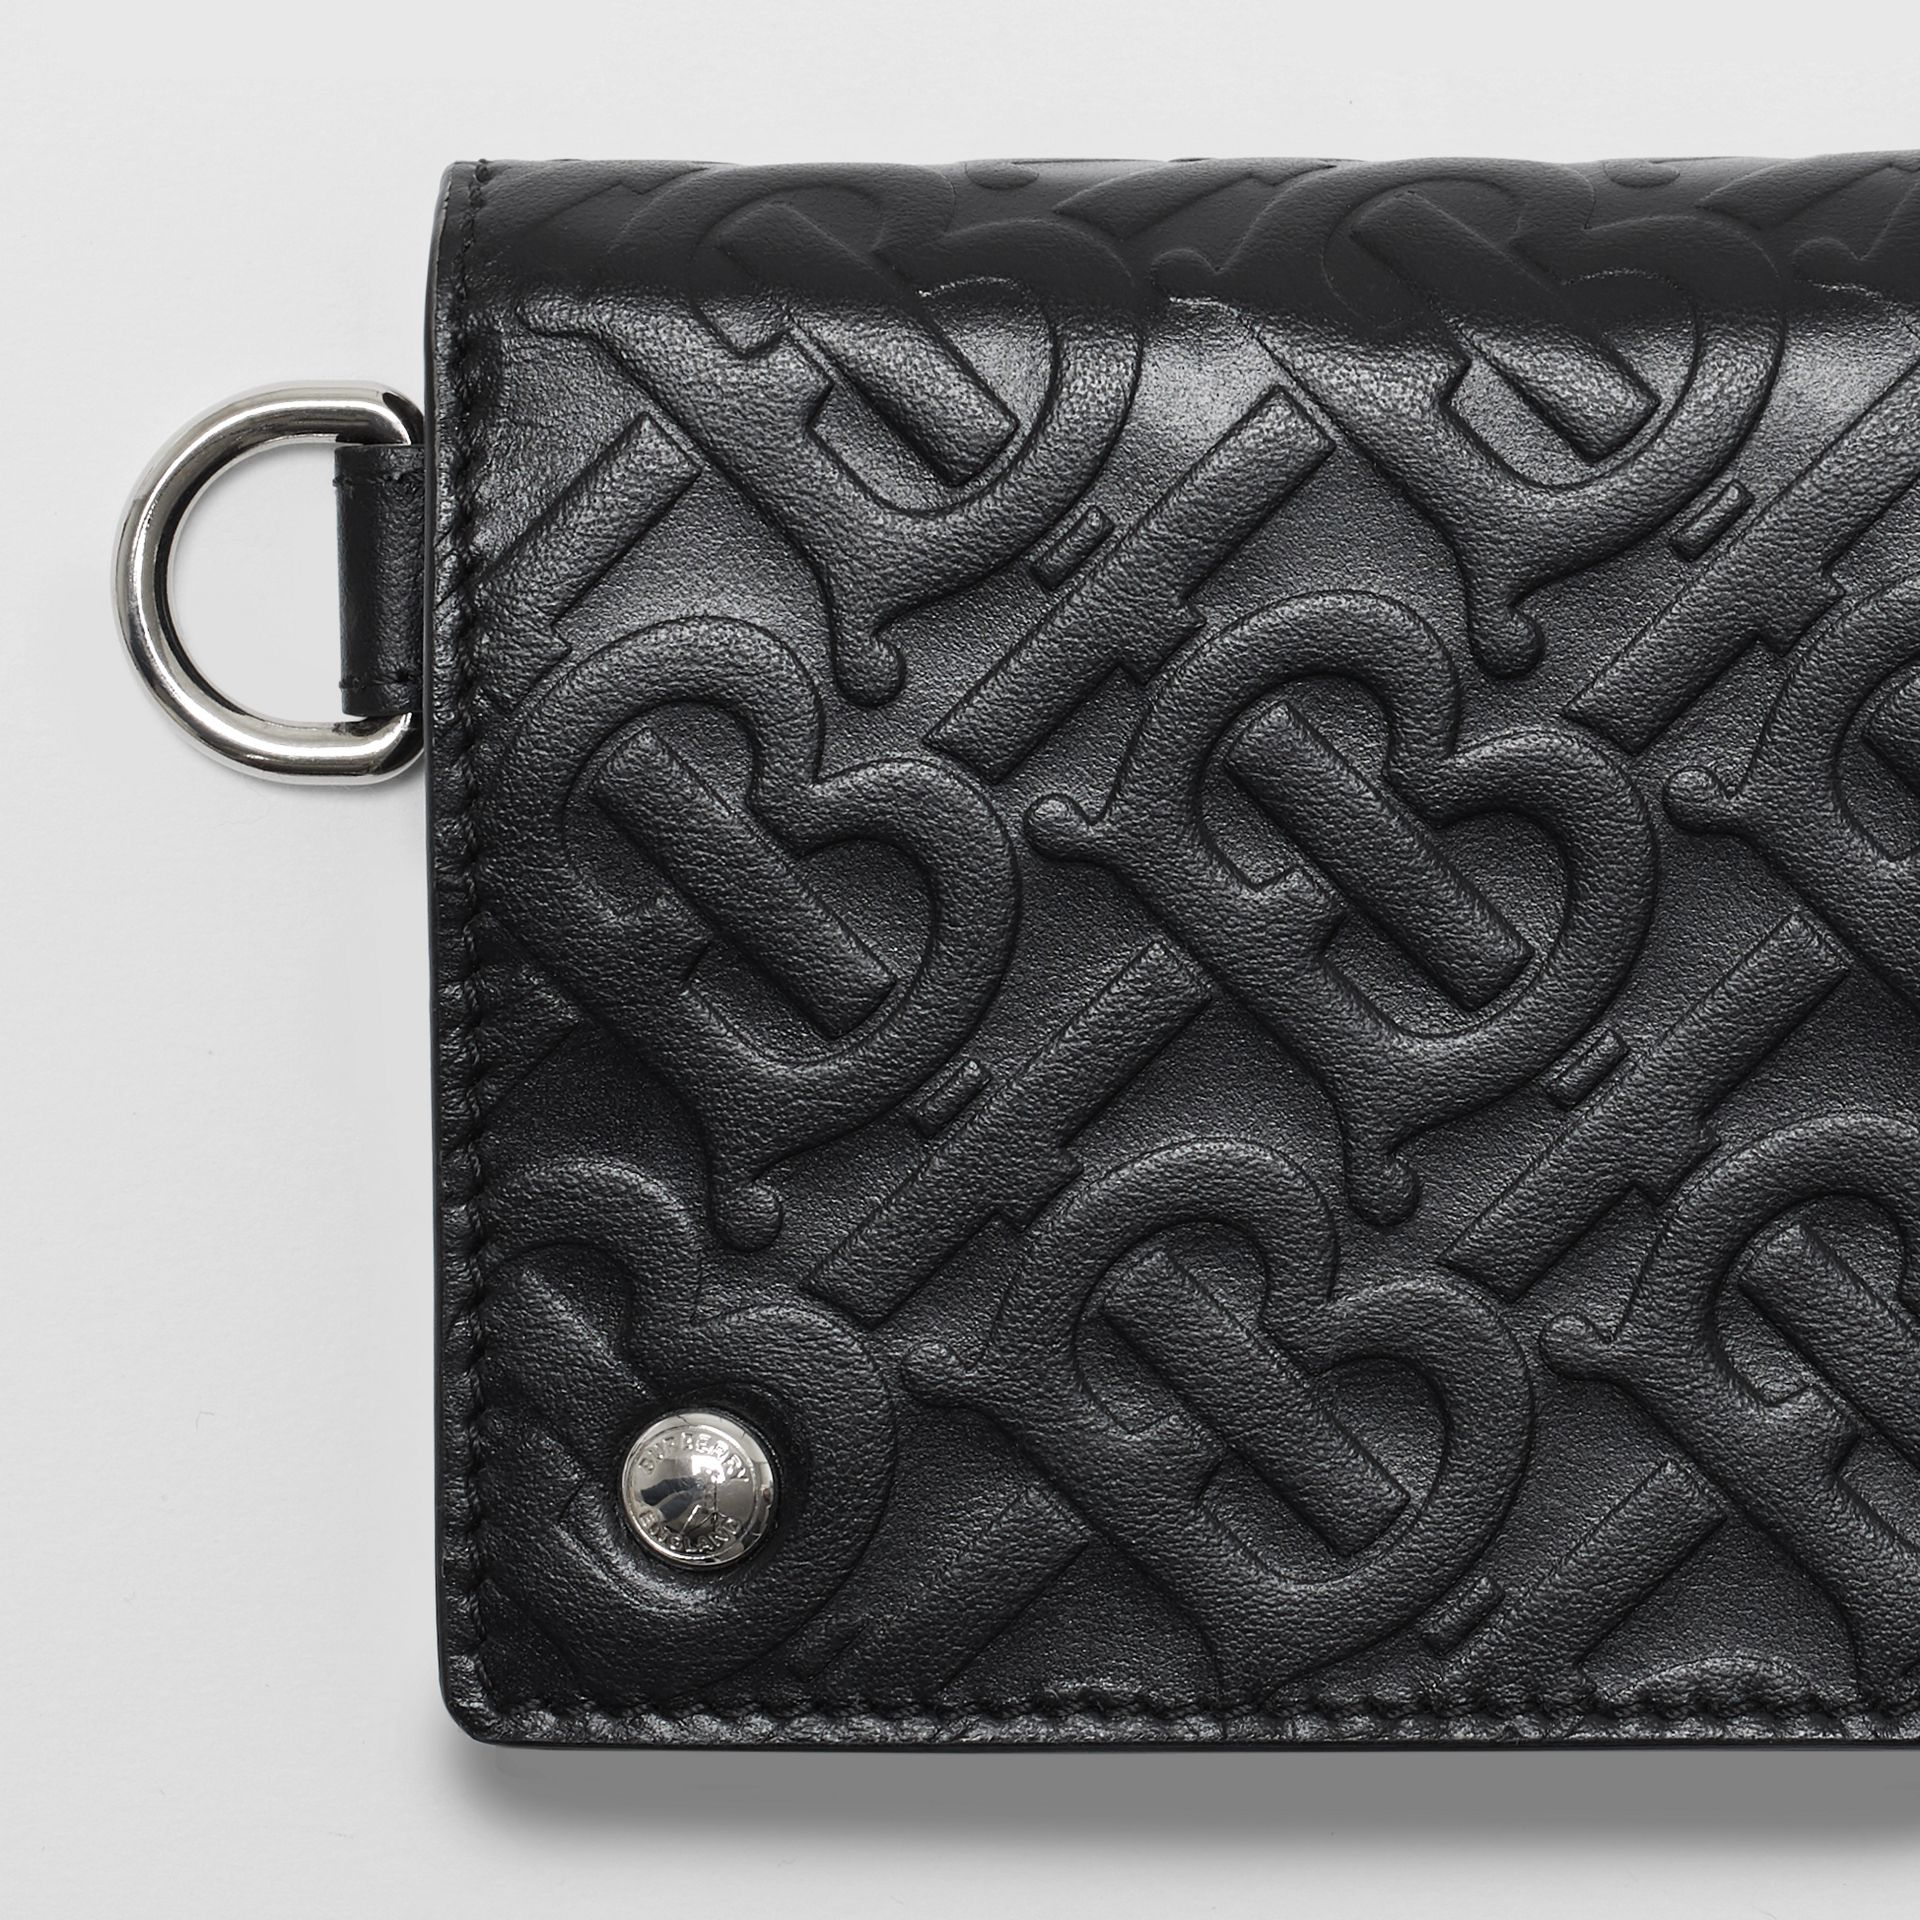 Monogram Embossed Leather Trifold Wallet in Black - Men | Burberry Australia - gallery image 1